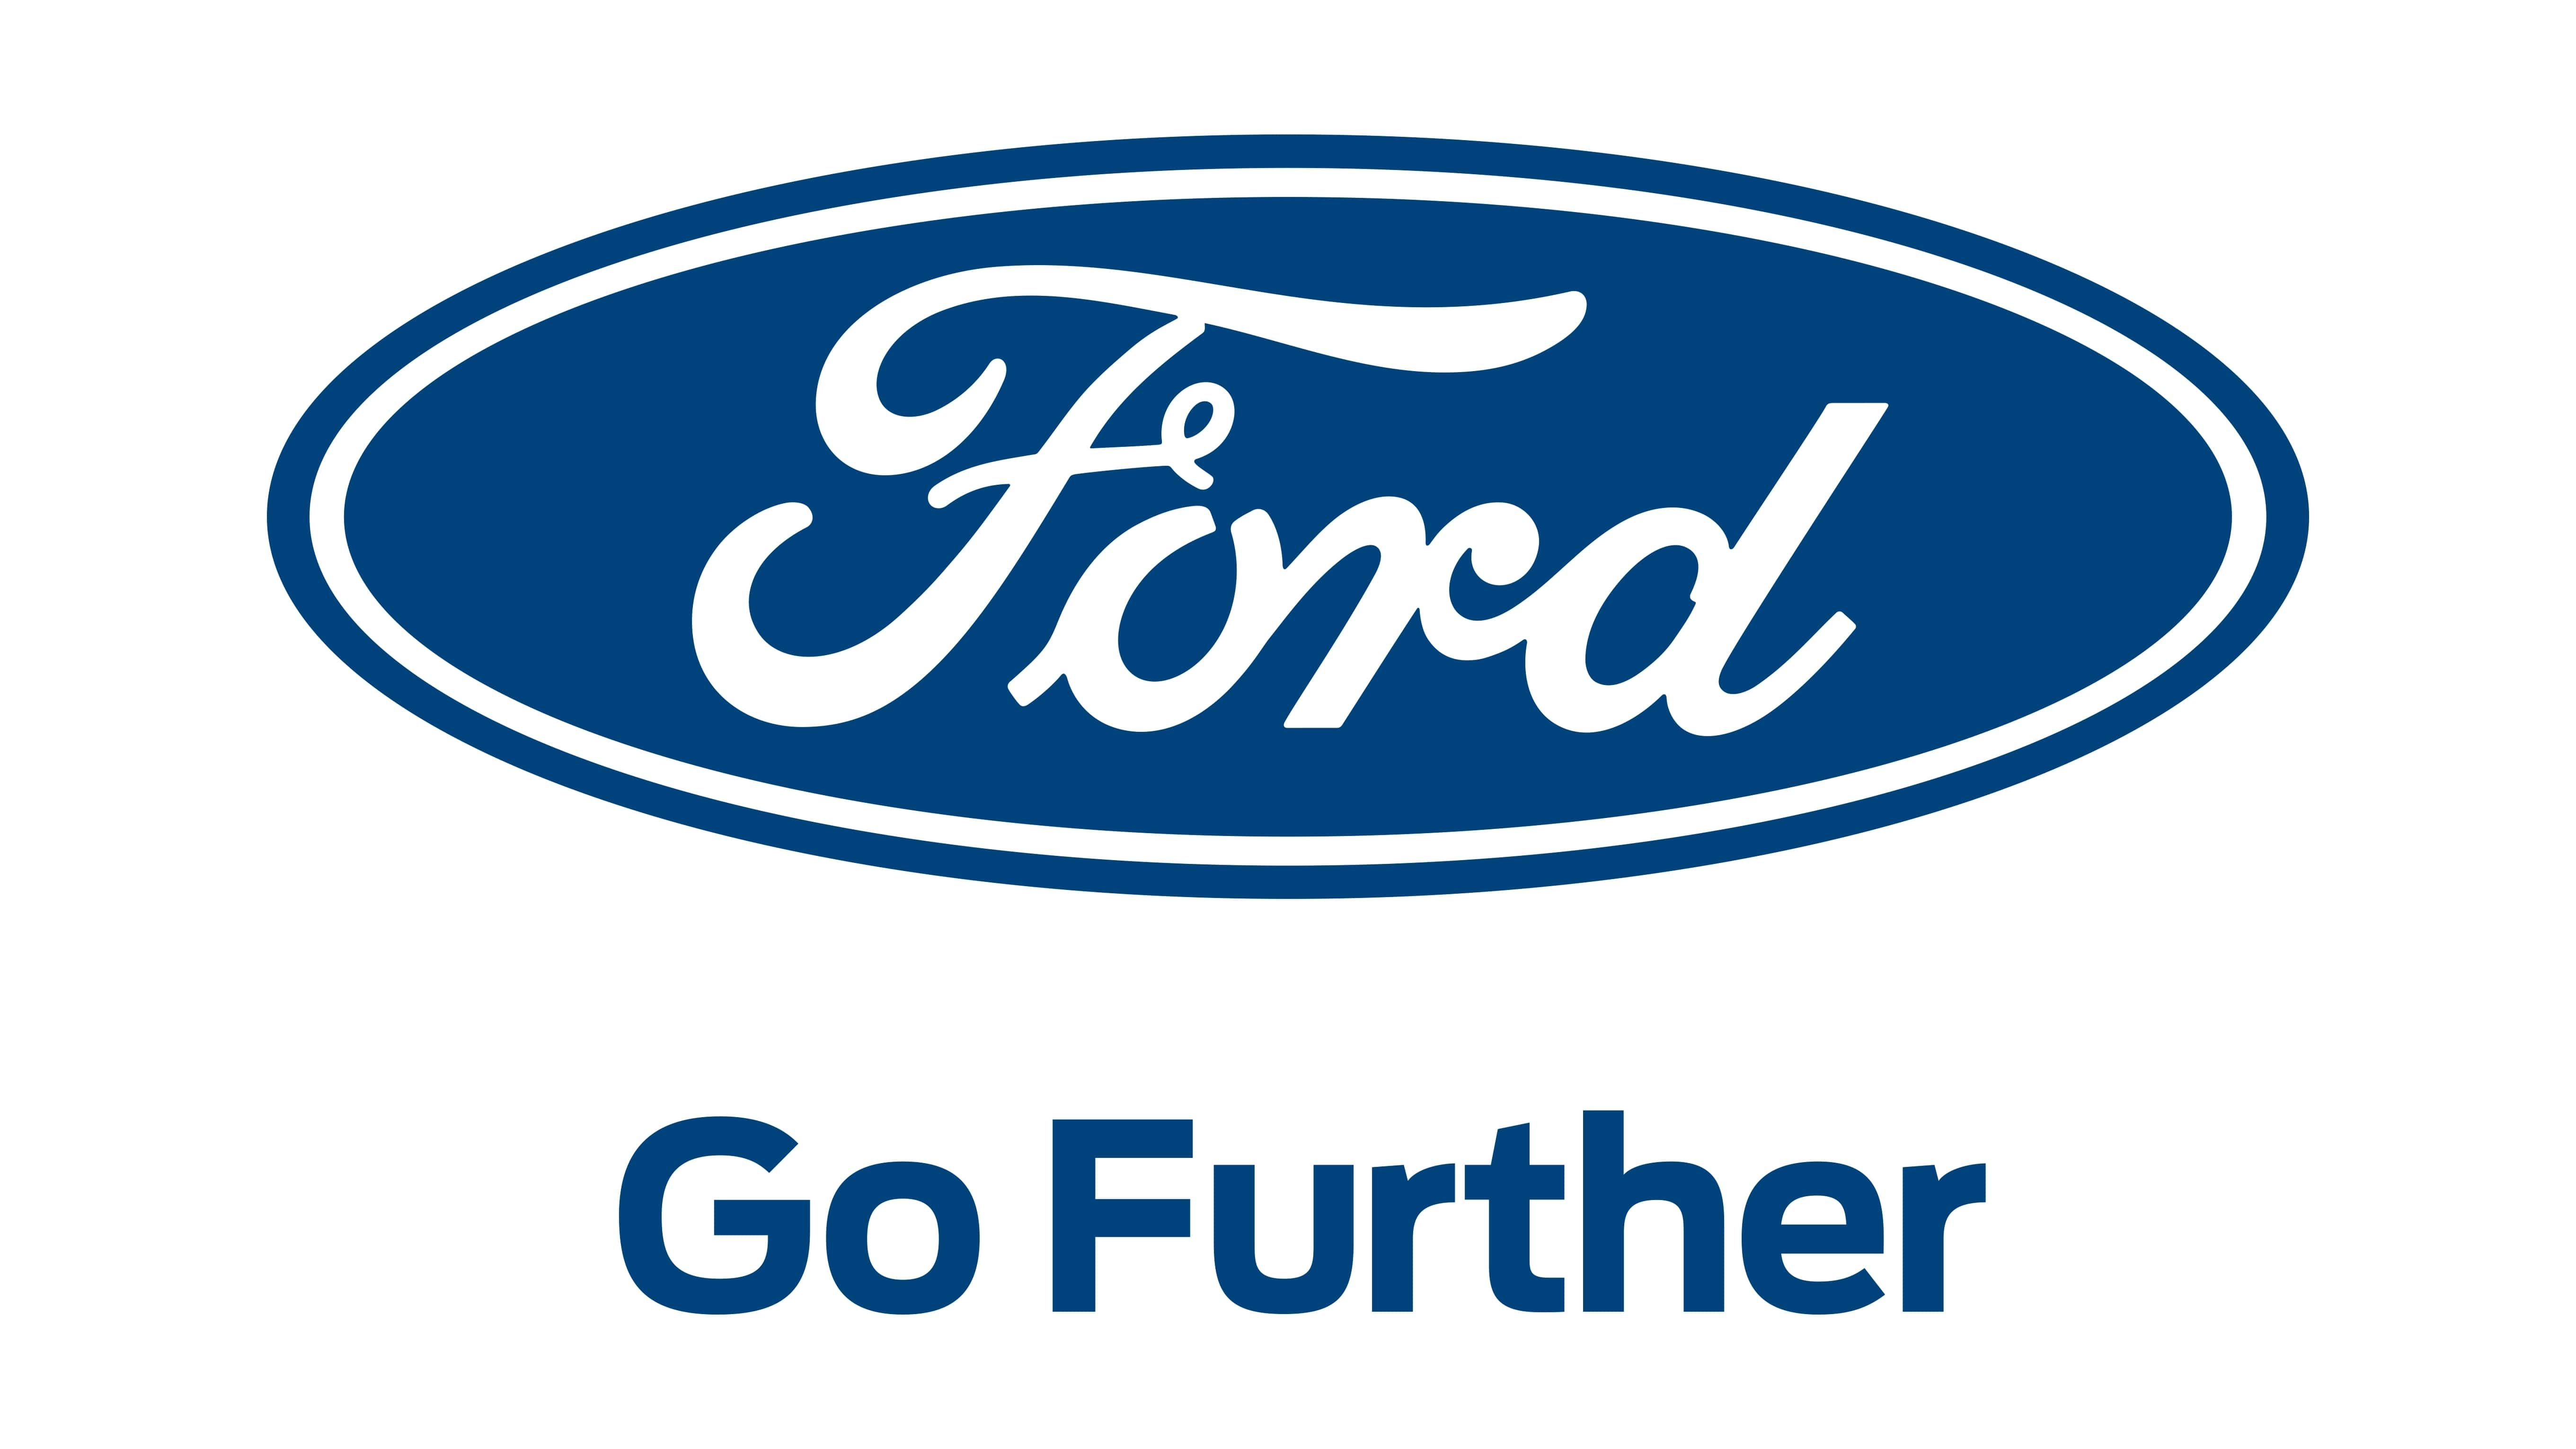 Ford Logo With Images Ford Logo Ford Motor Ford Motor Company